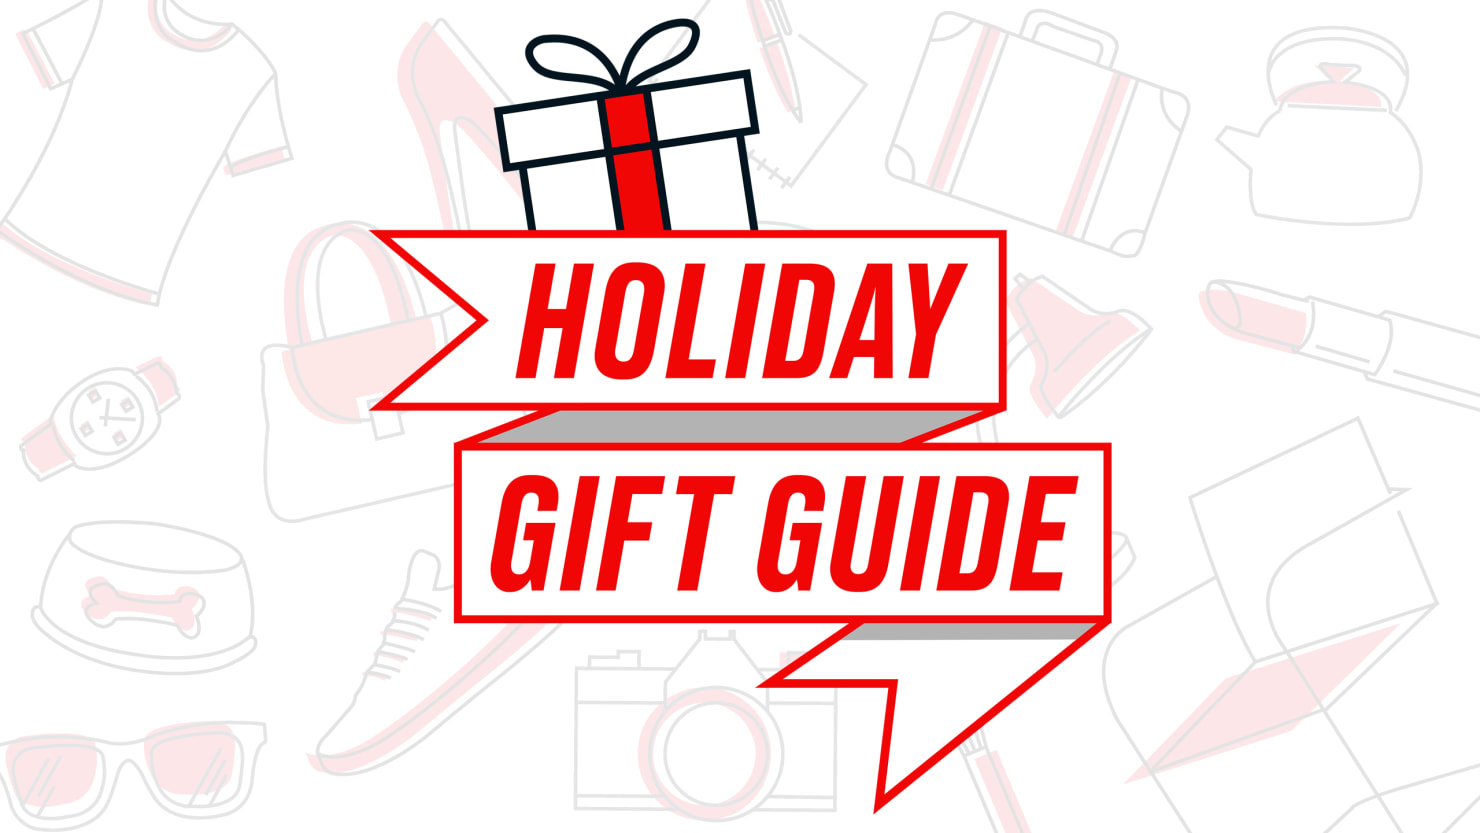 Scouted: Gift Guides, Gift Ideas, and Gift Inspiration For 2019, From Scouted